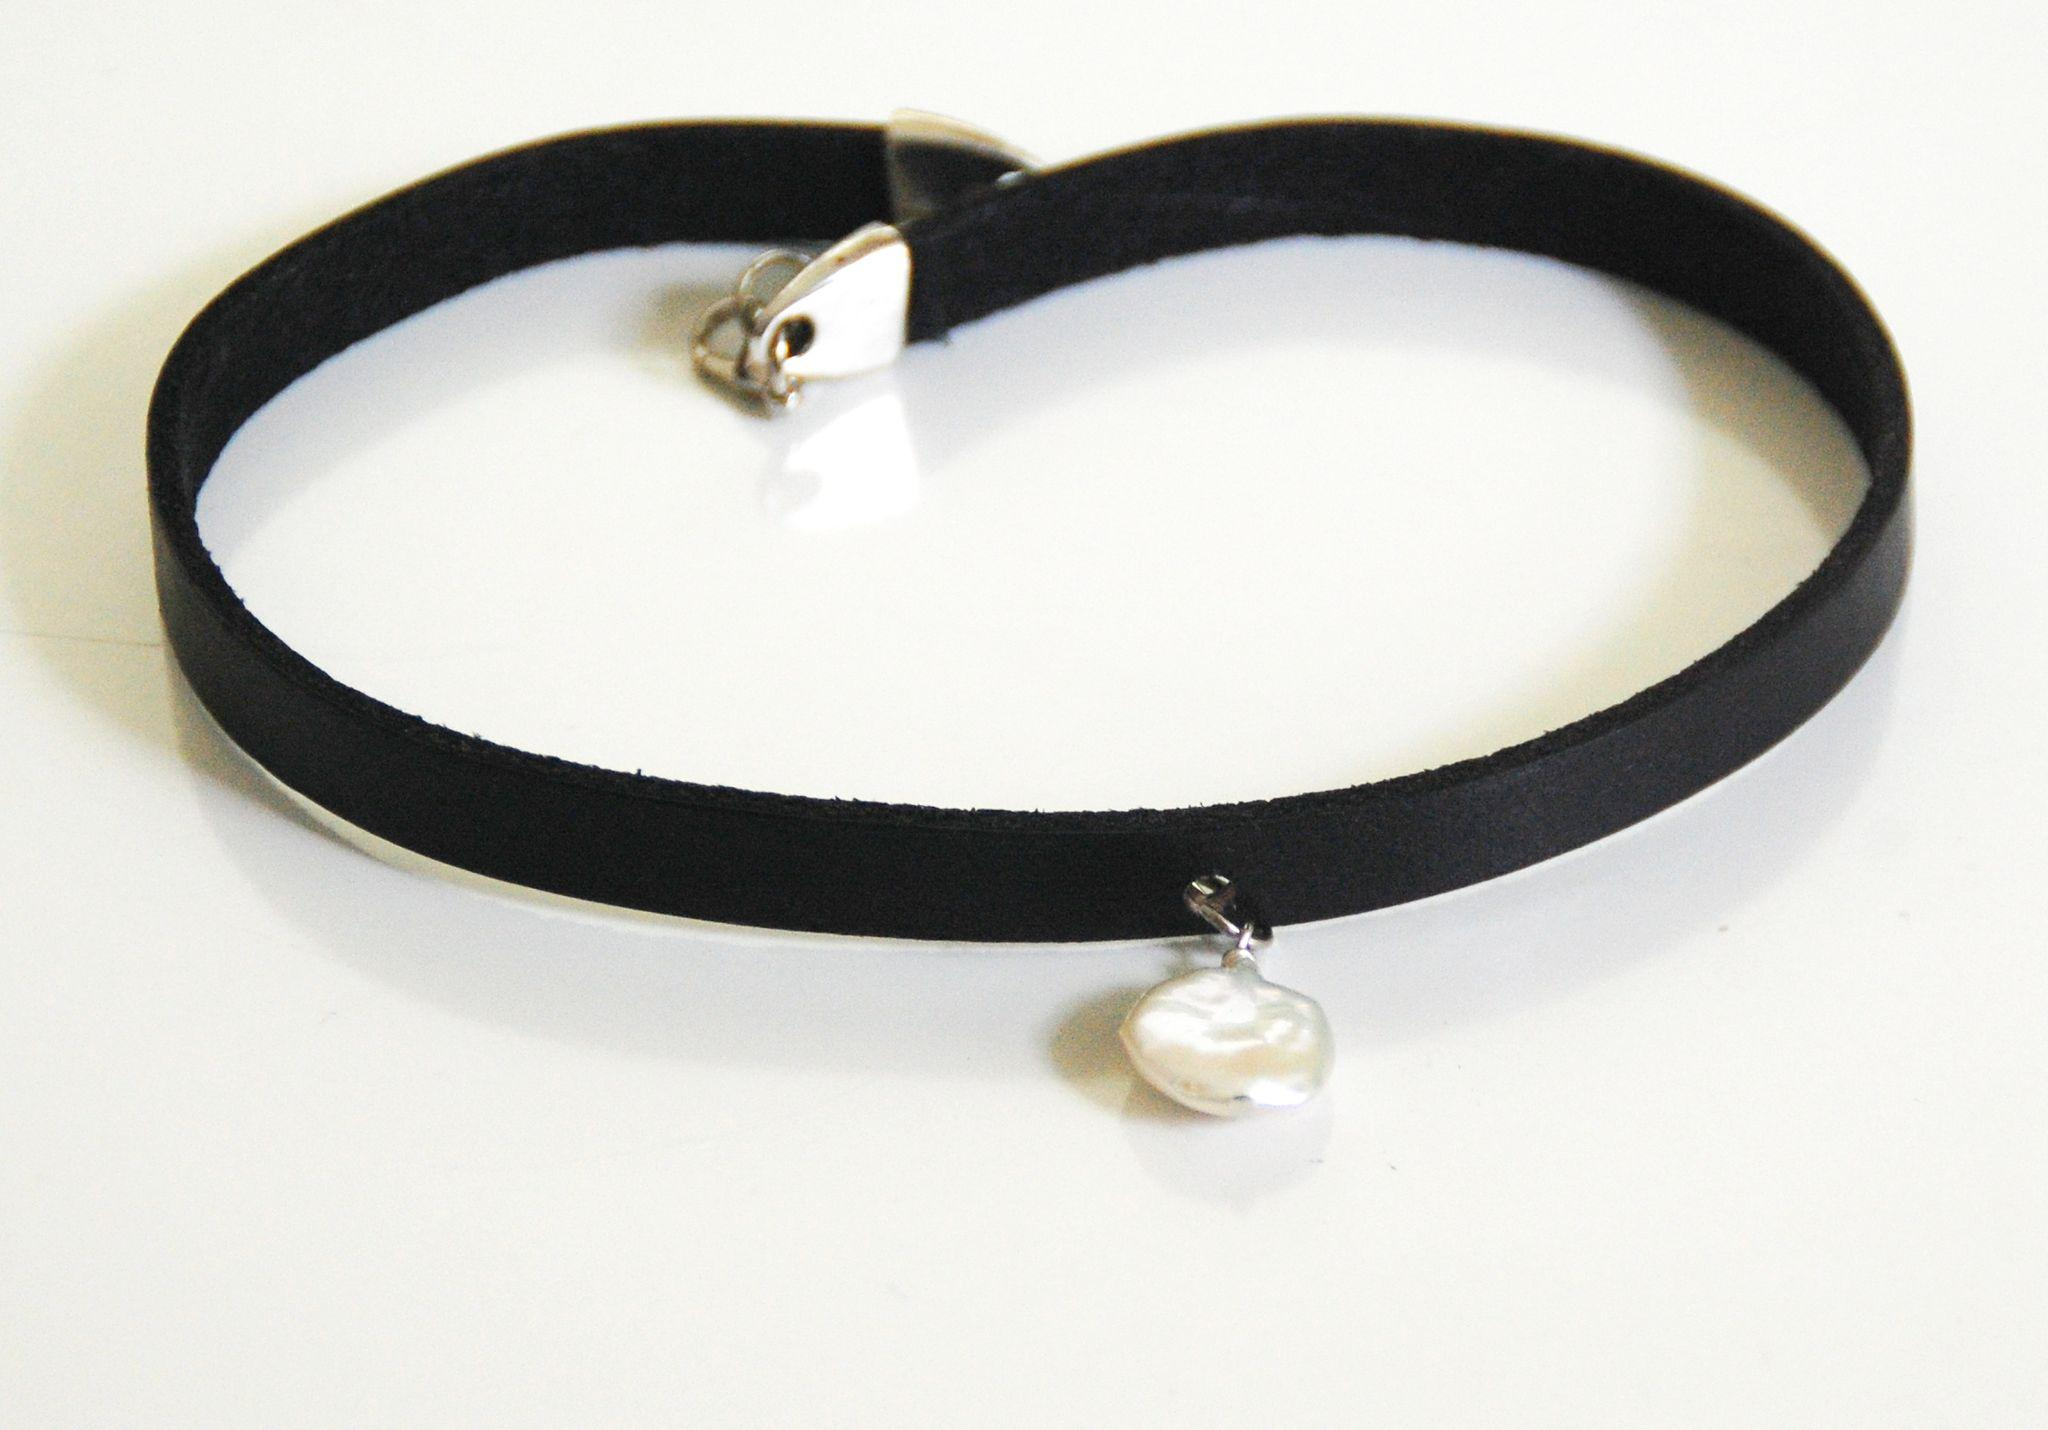 Roll Over Large Image To Magnify, Click Large Image To Zoom Expand  Description Genuine Leather Choker Necklace With Pearl